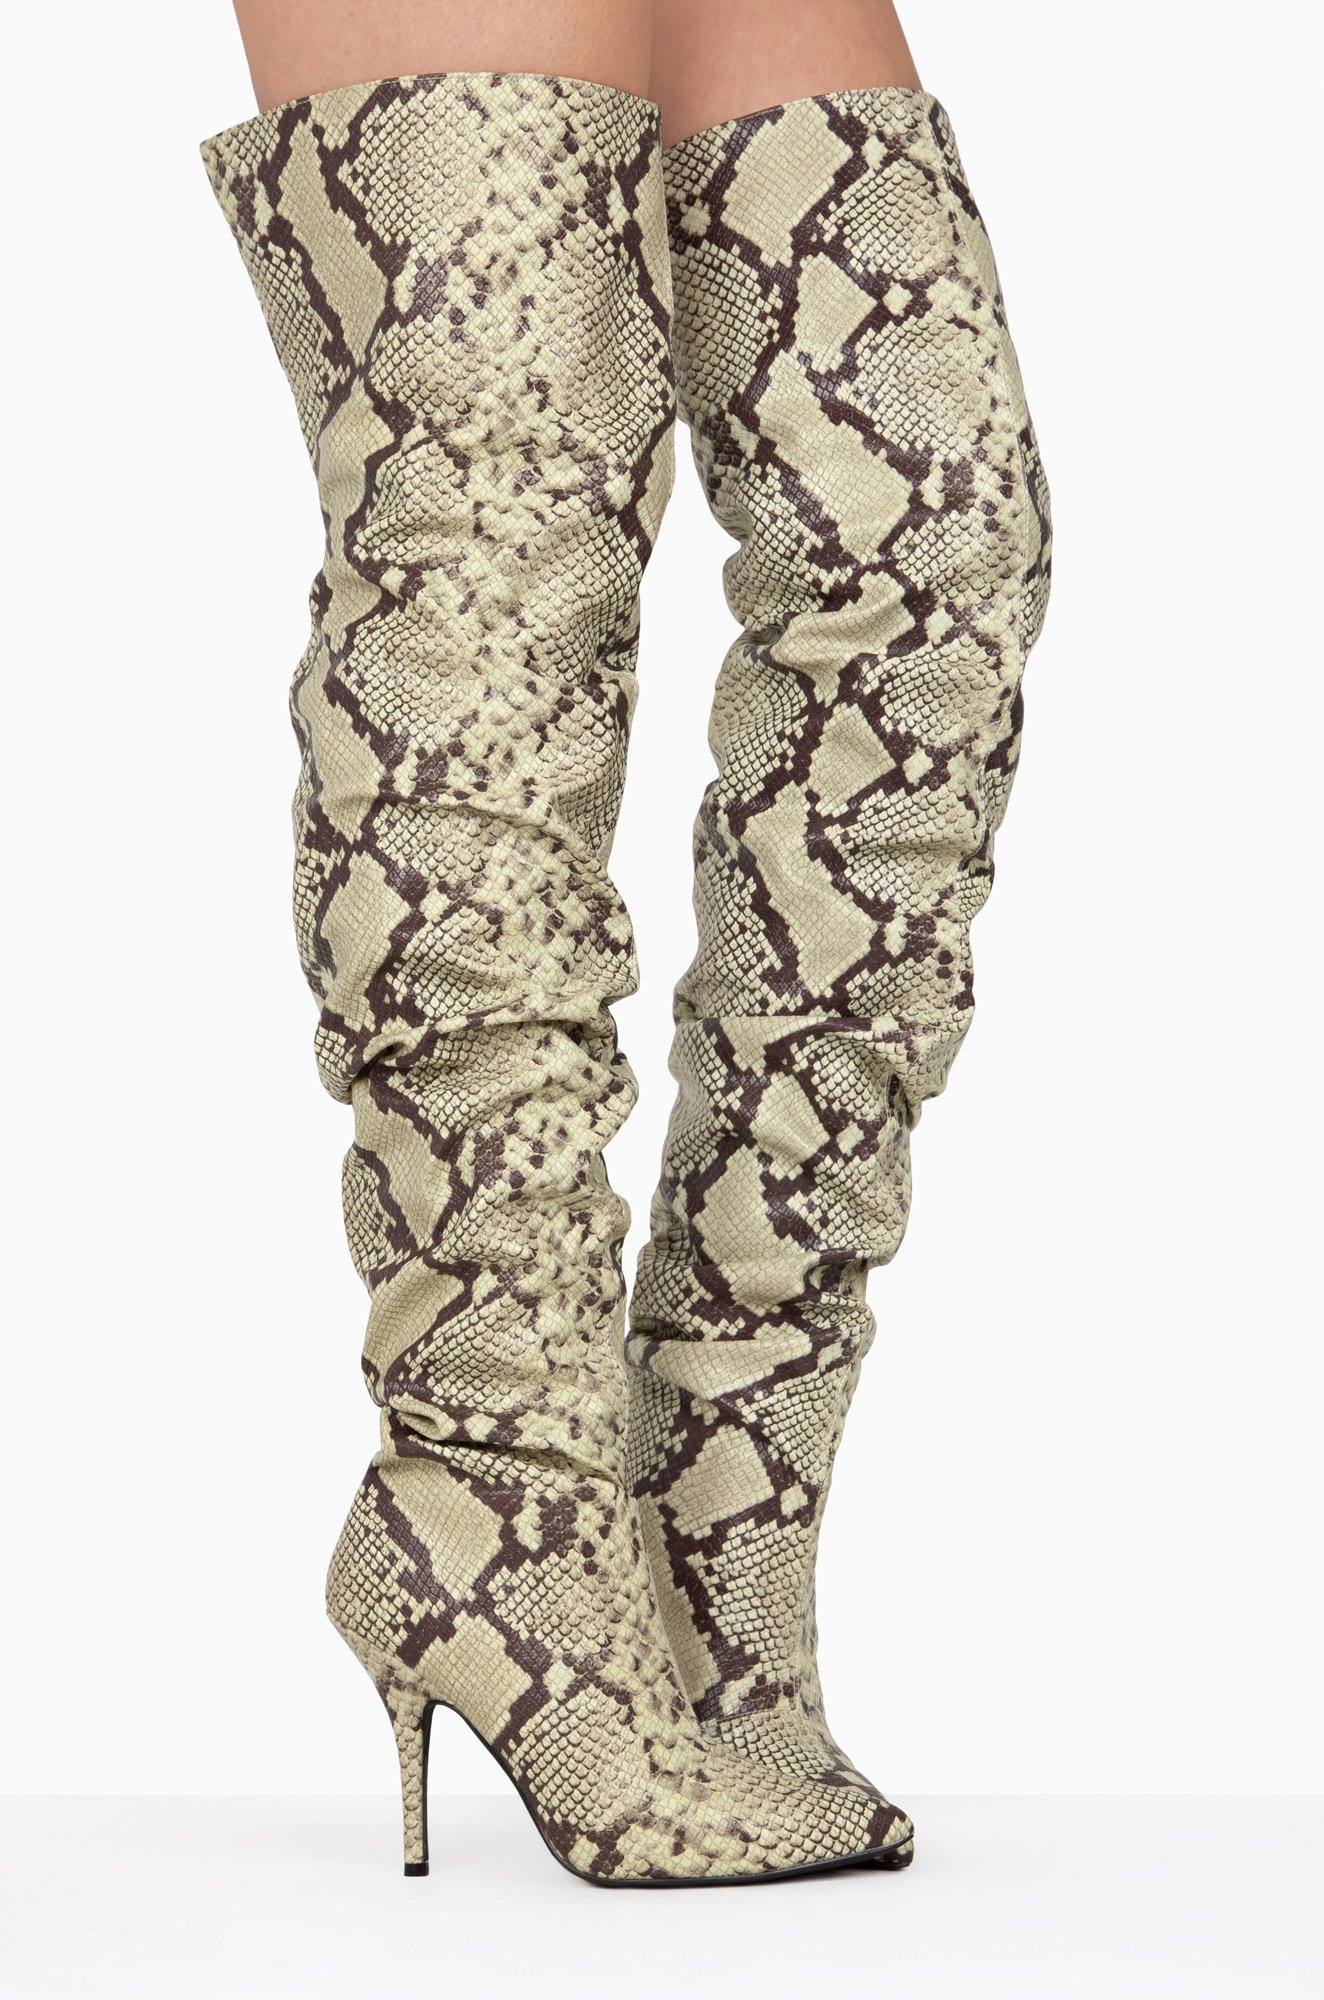 Cape-Robbin-Bown-Snake-Thigh-High-Slouch-Pointed-Toe-Over-The-Knee-Stiletto-Boot thumbnail 61